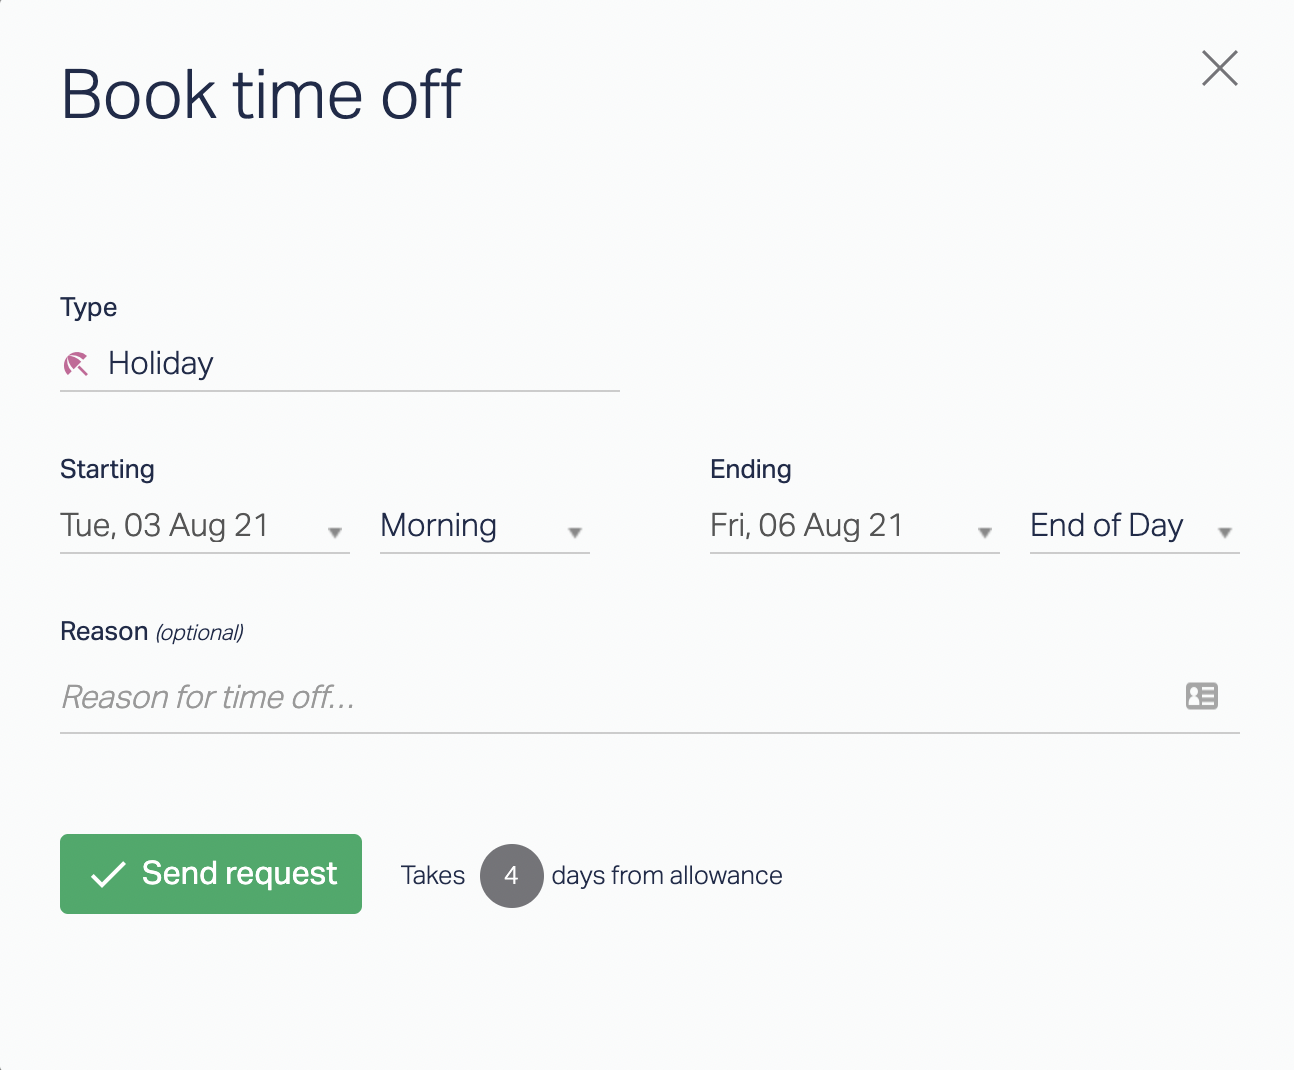 Book time off: Time off type, dates, and reason.